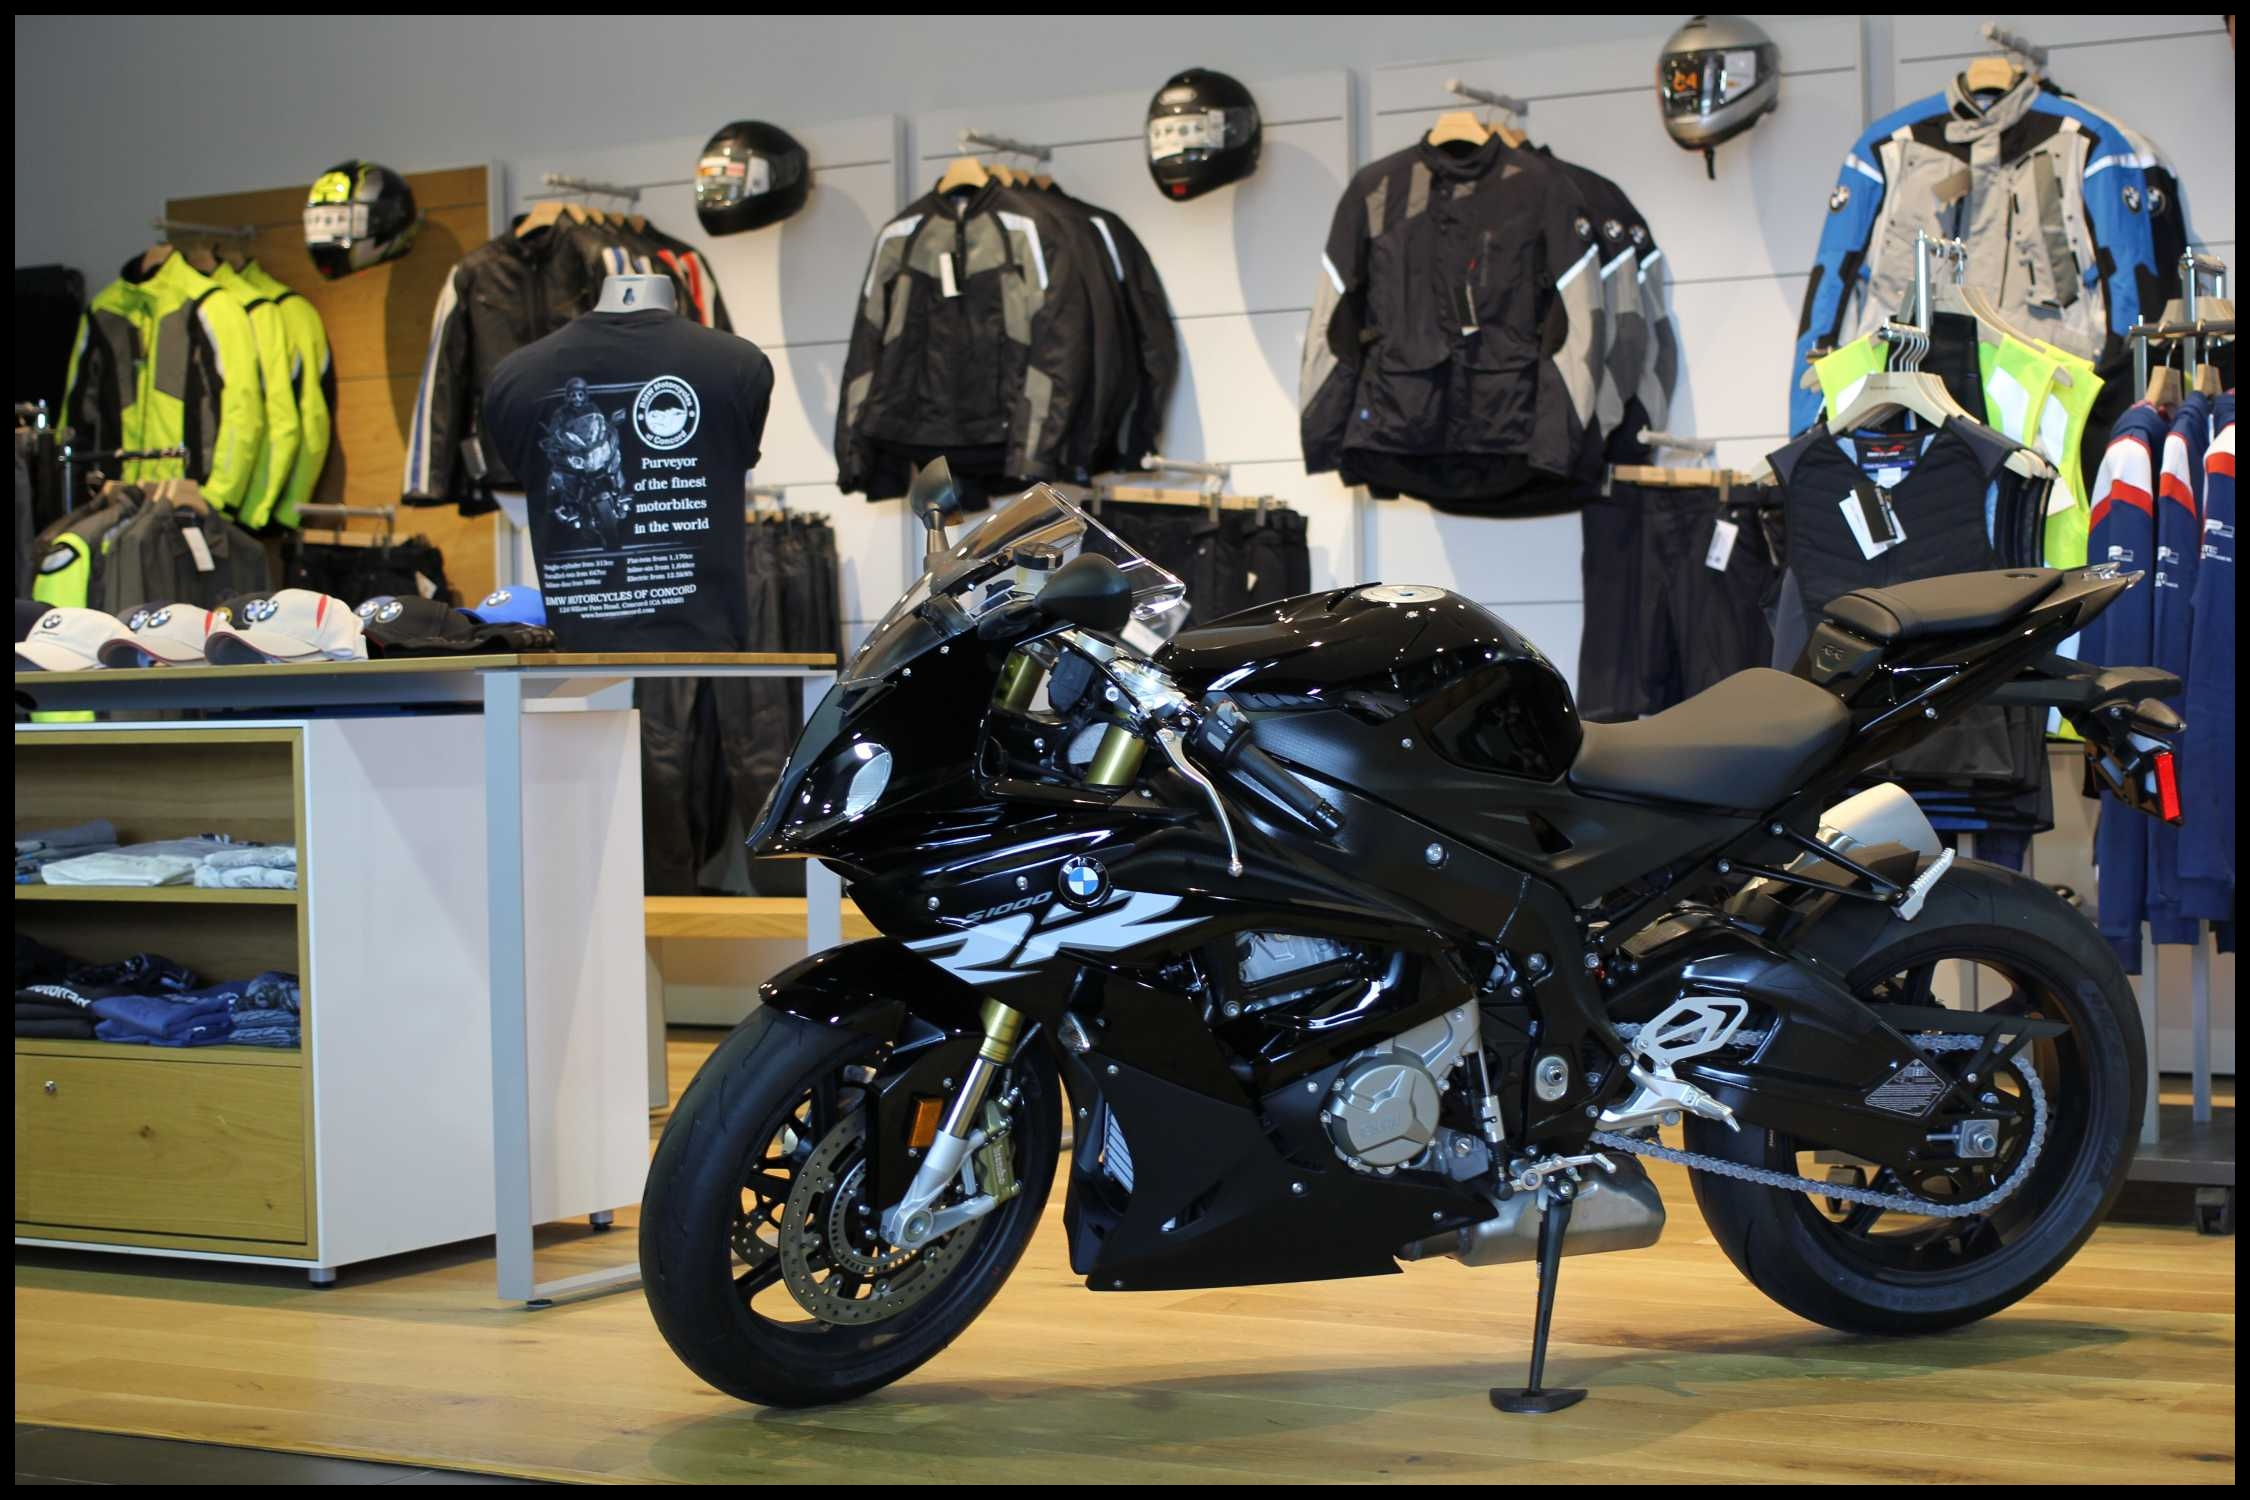 P bmw motorcycles of concord offers a plete line of new and pre owned bmw motorcycles parts accesso 2250px